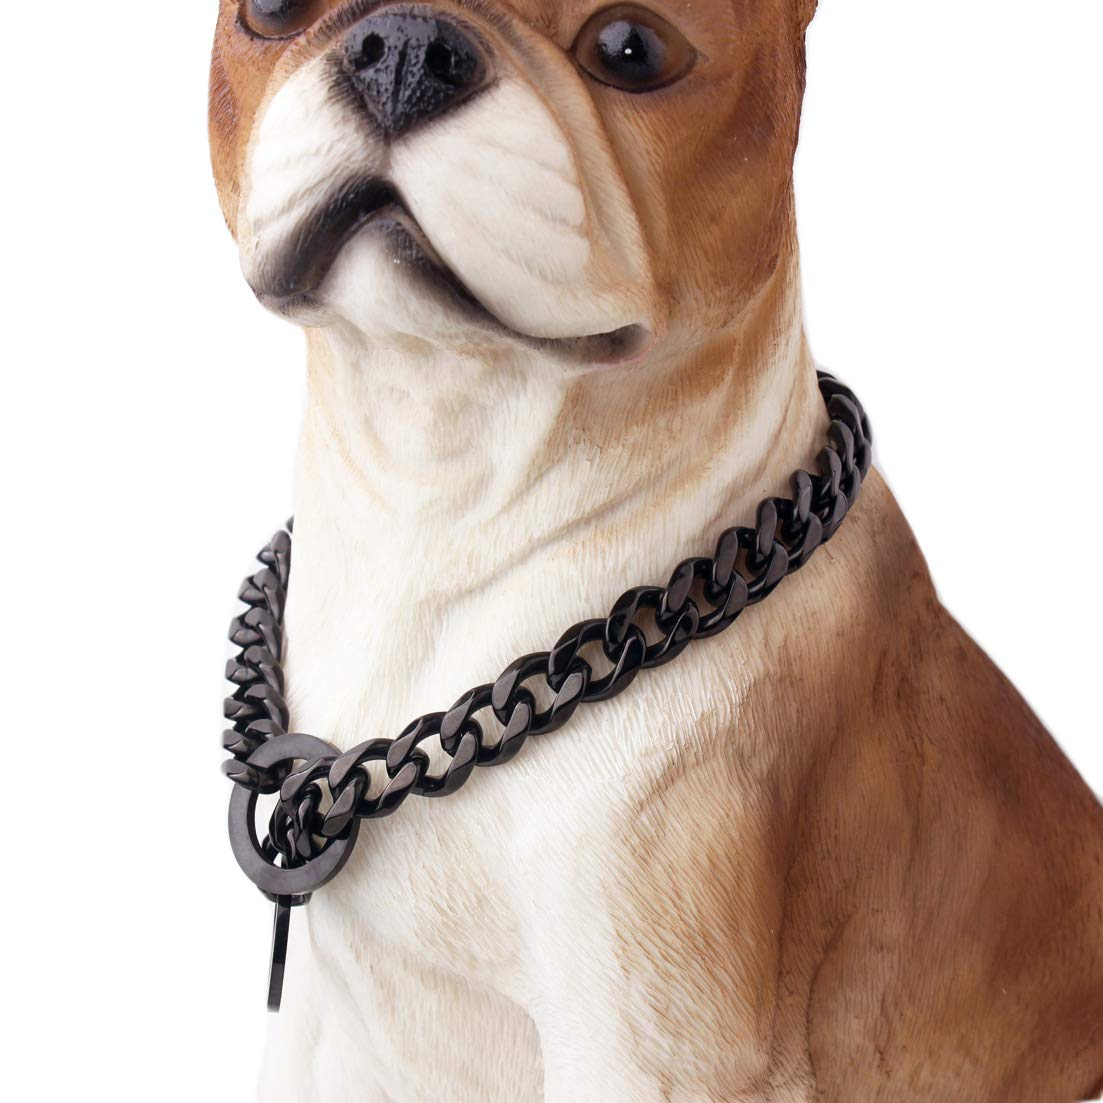 Pet Dog Choke Collar Chain 15mm Wide Stainless Steel Necklace Decor for Large Small Dogs Animals 24'' Long